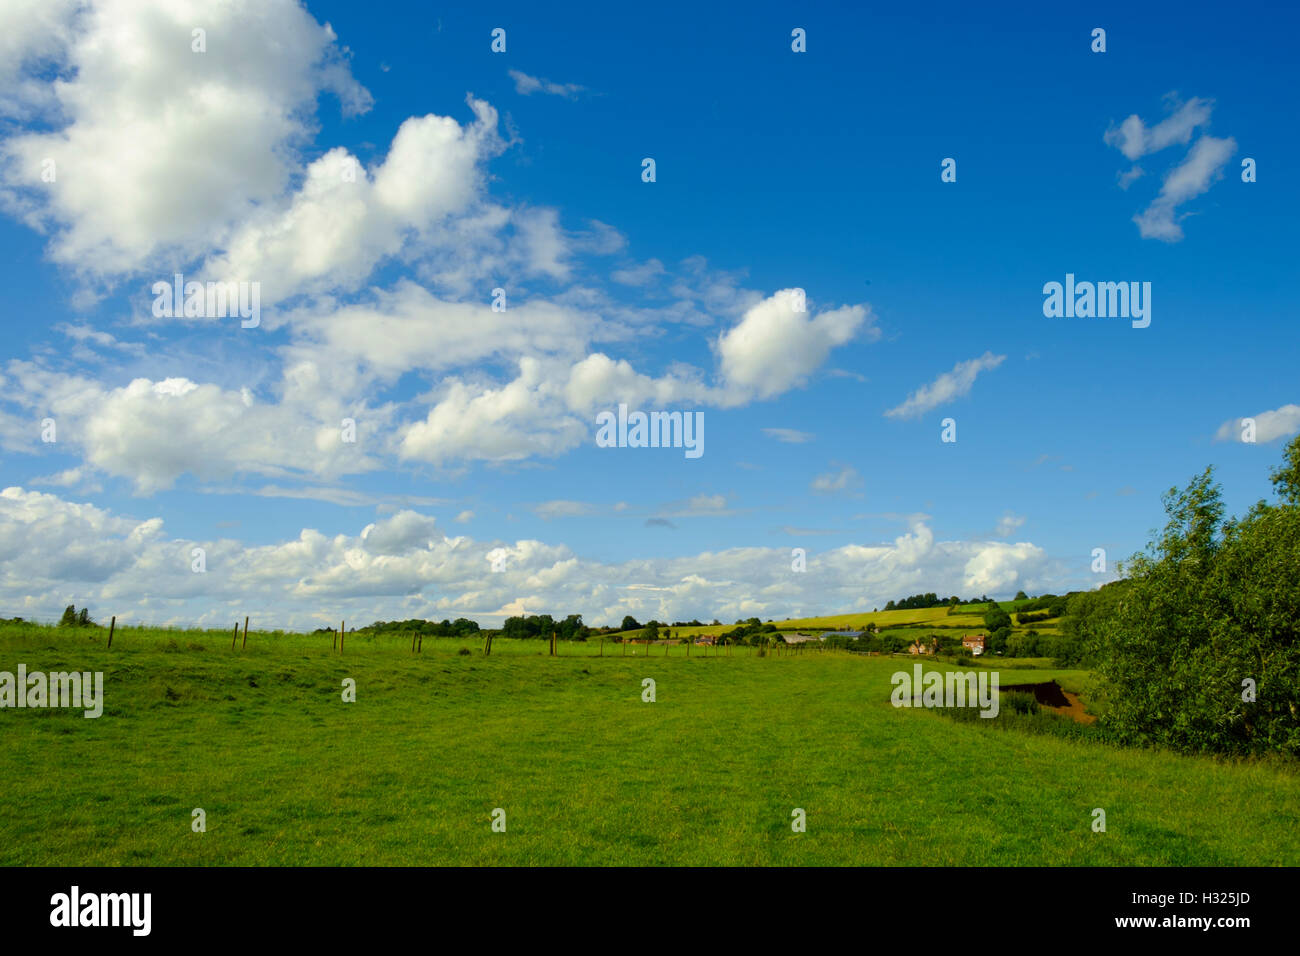 A View across the beautiful Warwickshire countryside - Stock Image